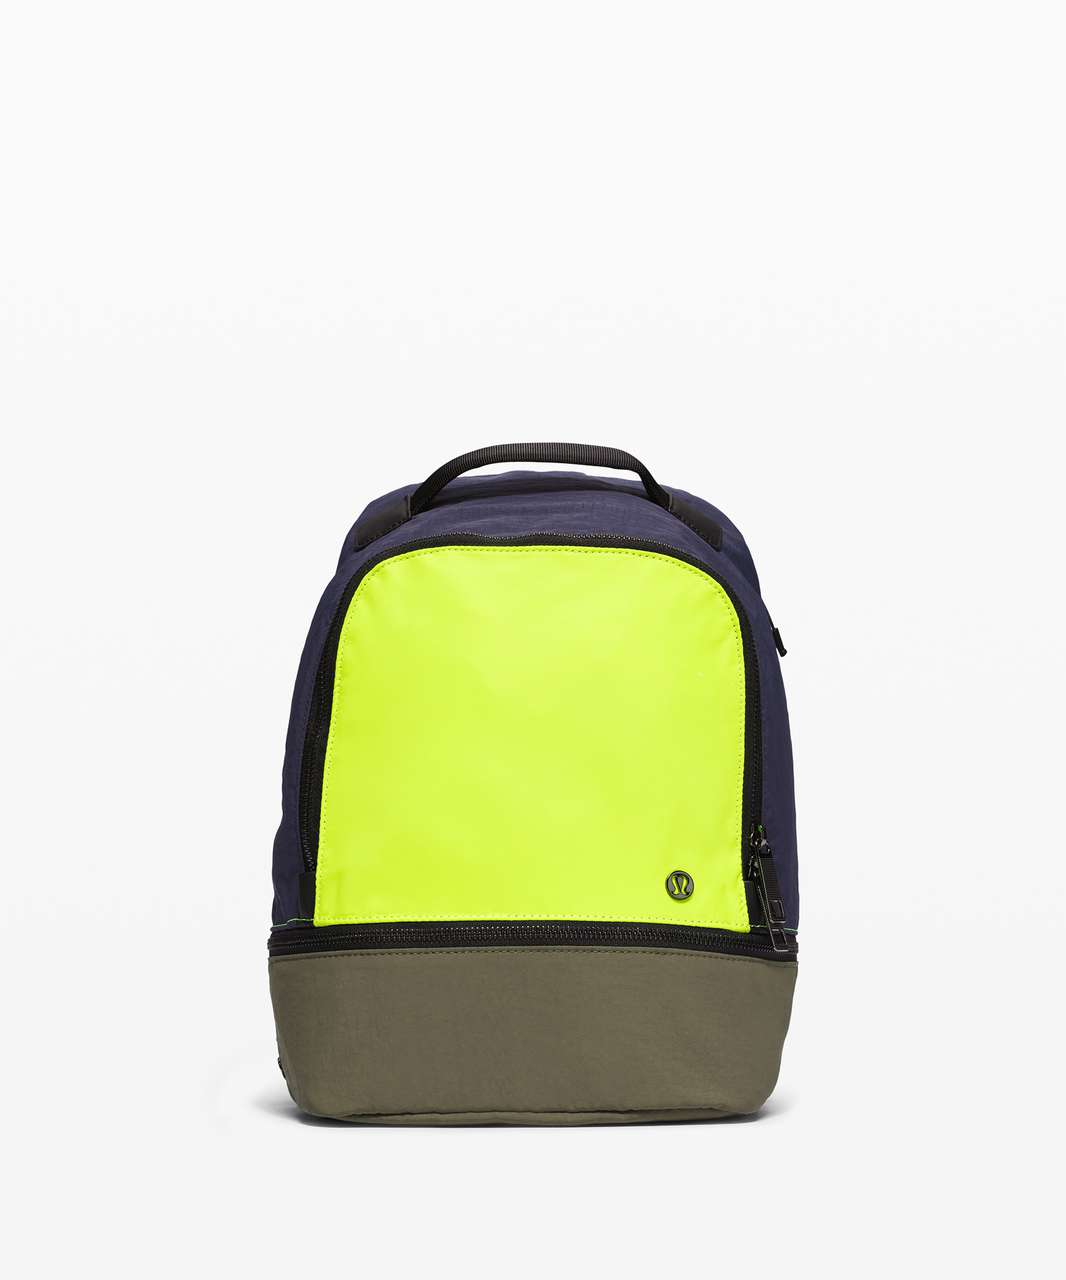 Lululemon City Adventurer Backpack Mini *10L - Army Green / Highlight Yellow / Cadet Blue